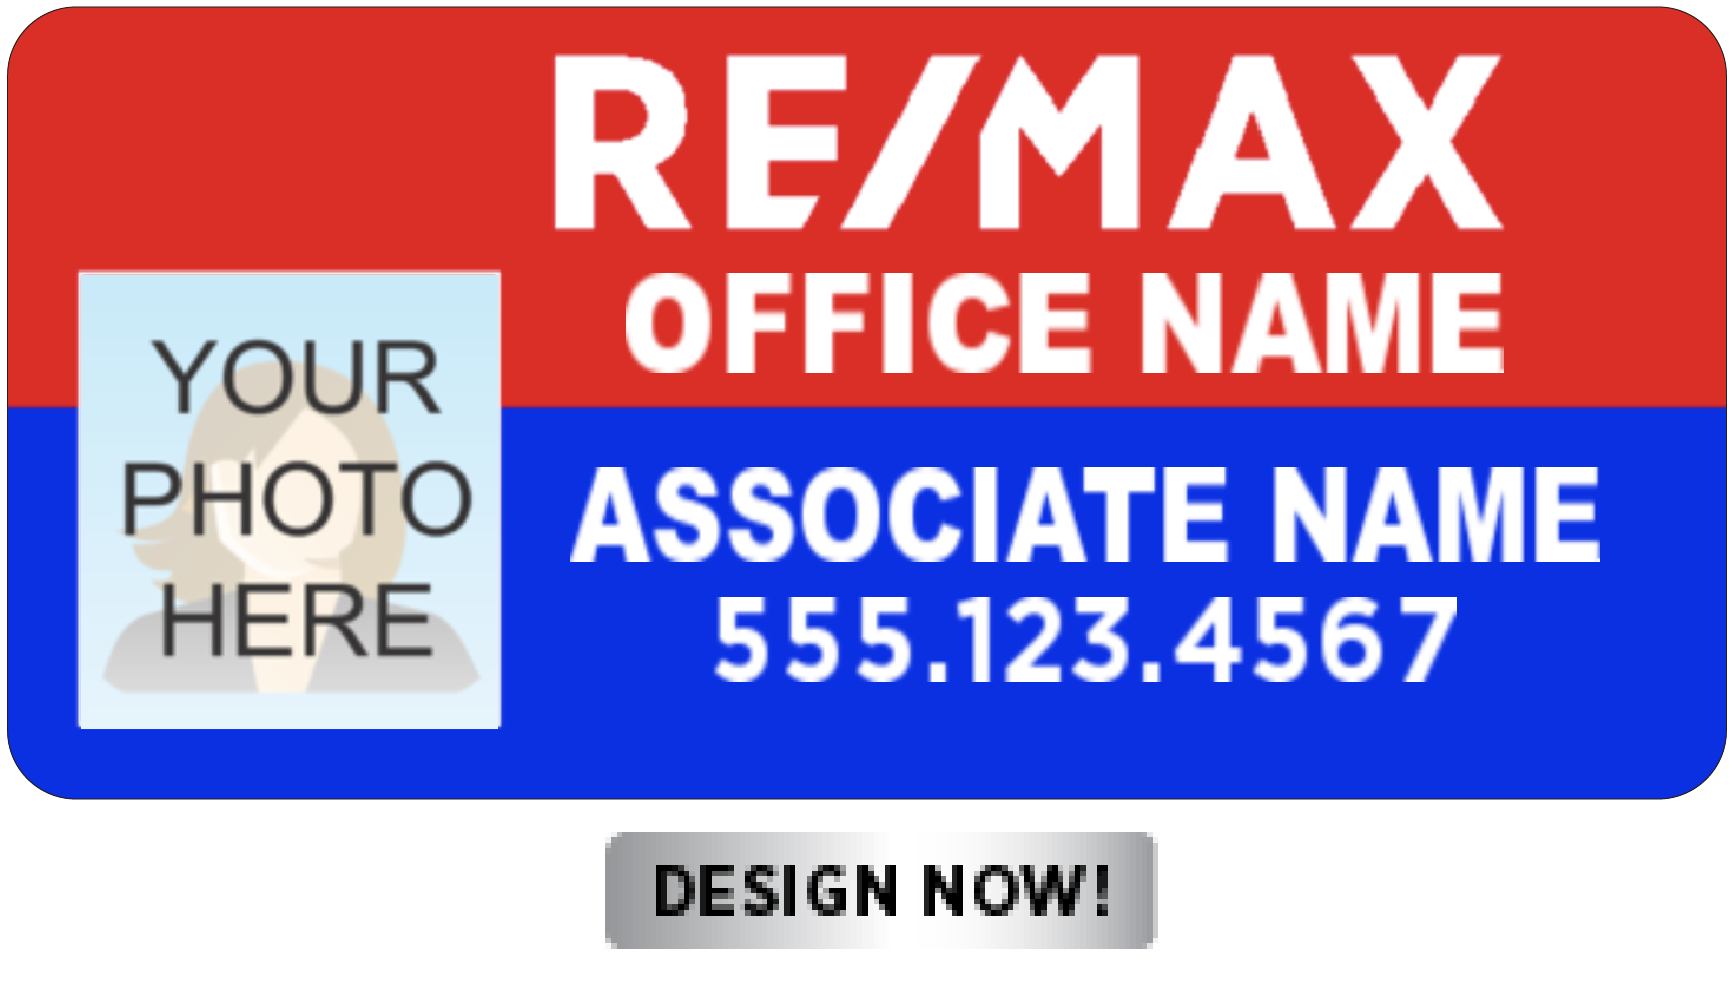 remax11x24magnetredbluewithpicthumbnails.png